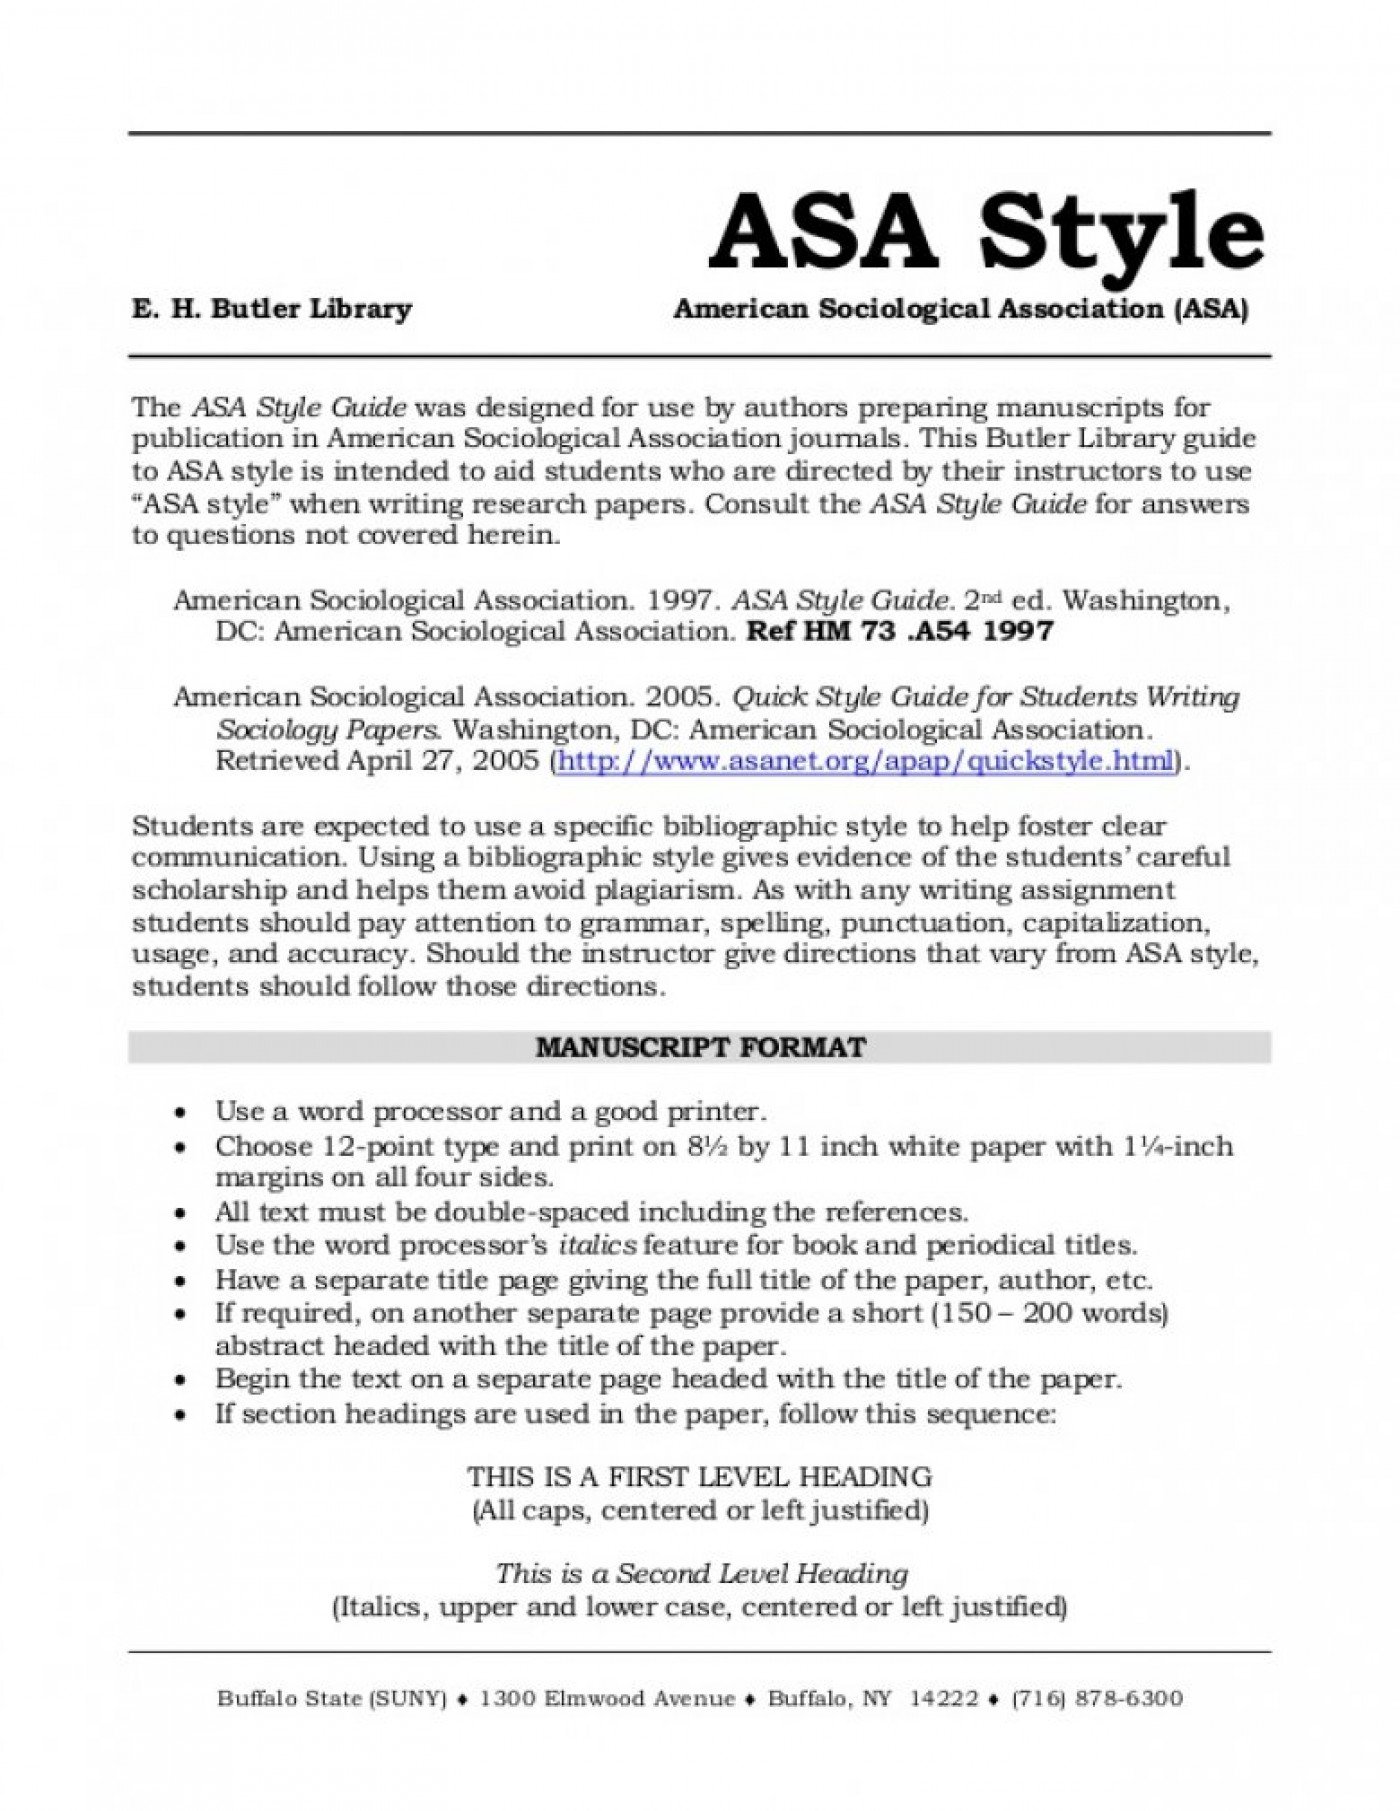 023 Asa Format Papers Essay Remarkable Reference Generator Heading Citation 1400